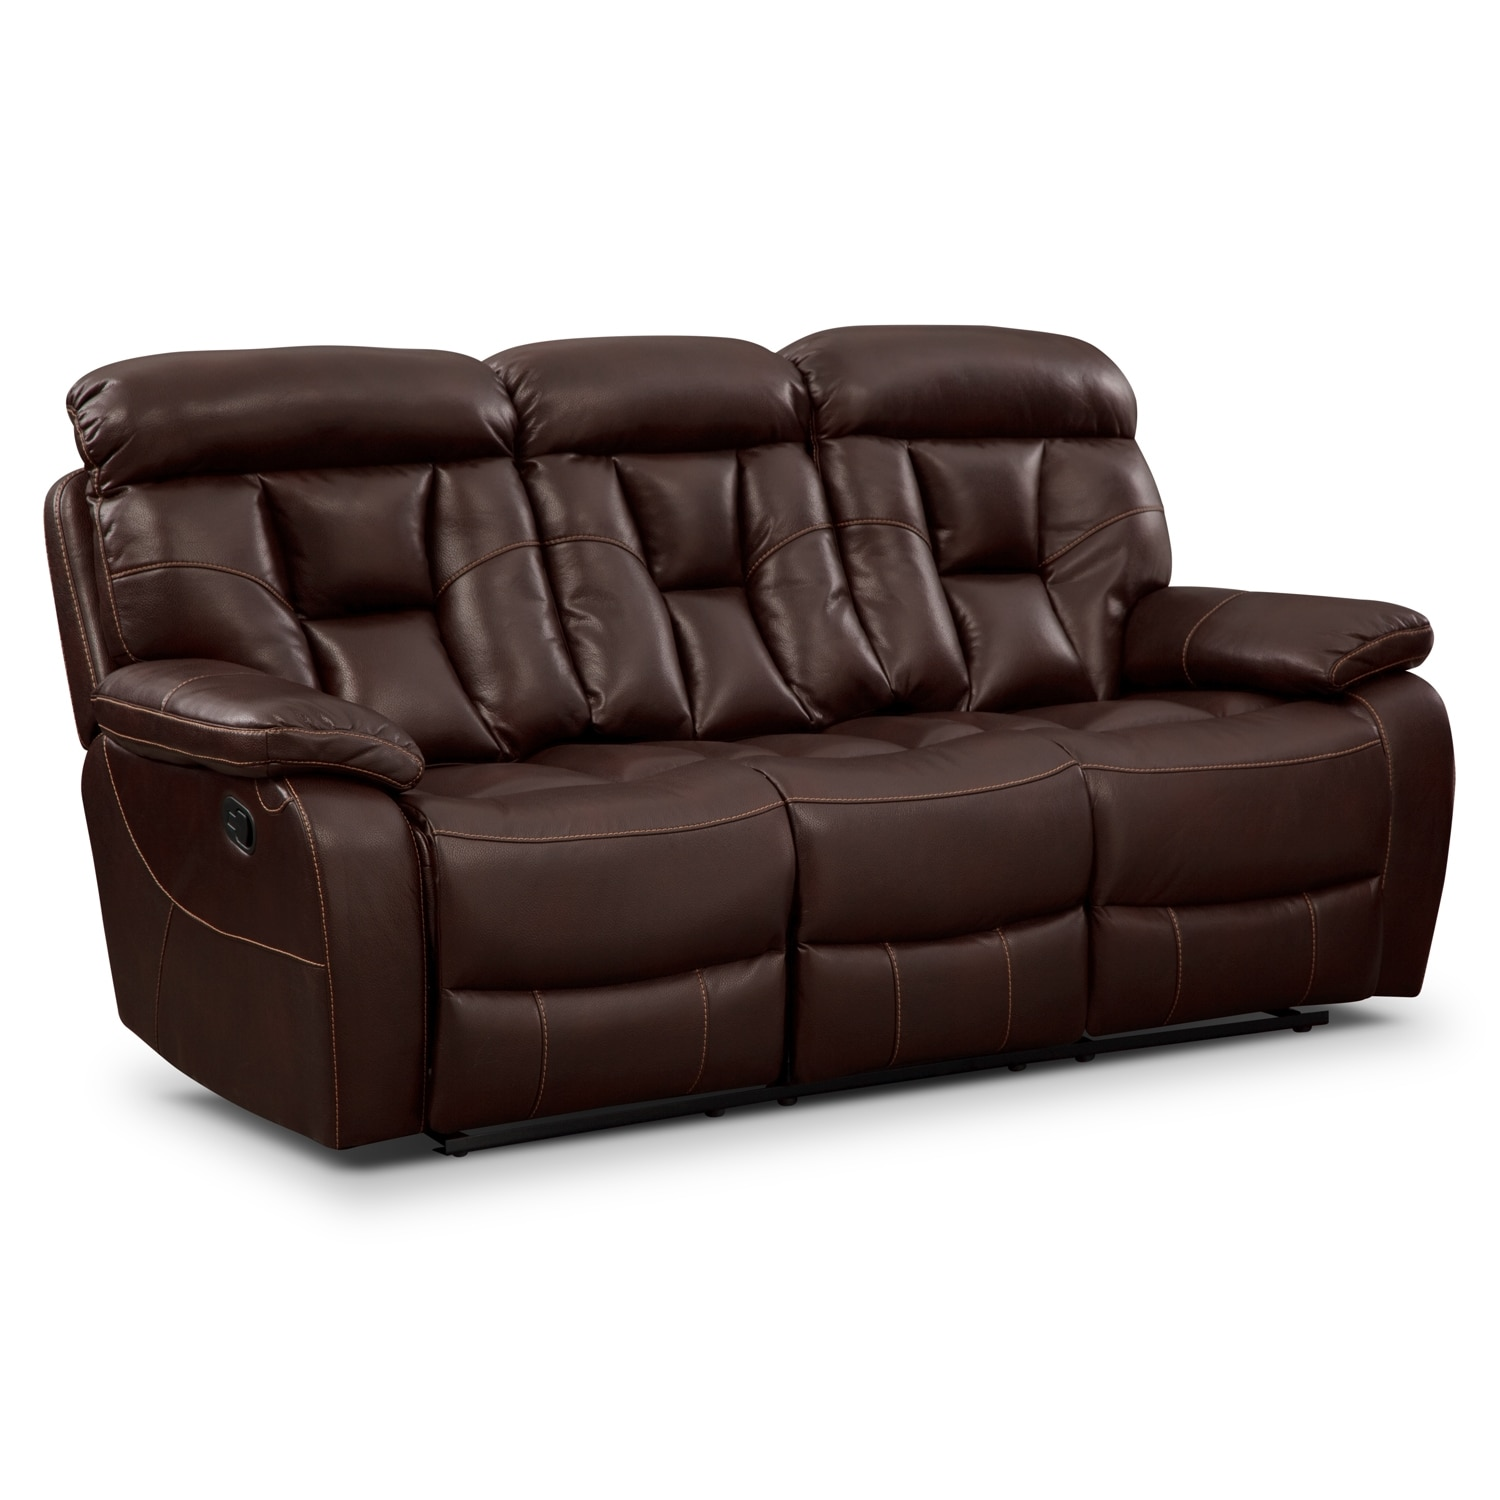 Dakota reclining sofa java american signature furniture for Leather reclining sofa